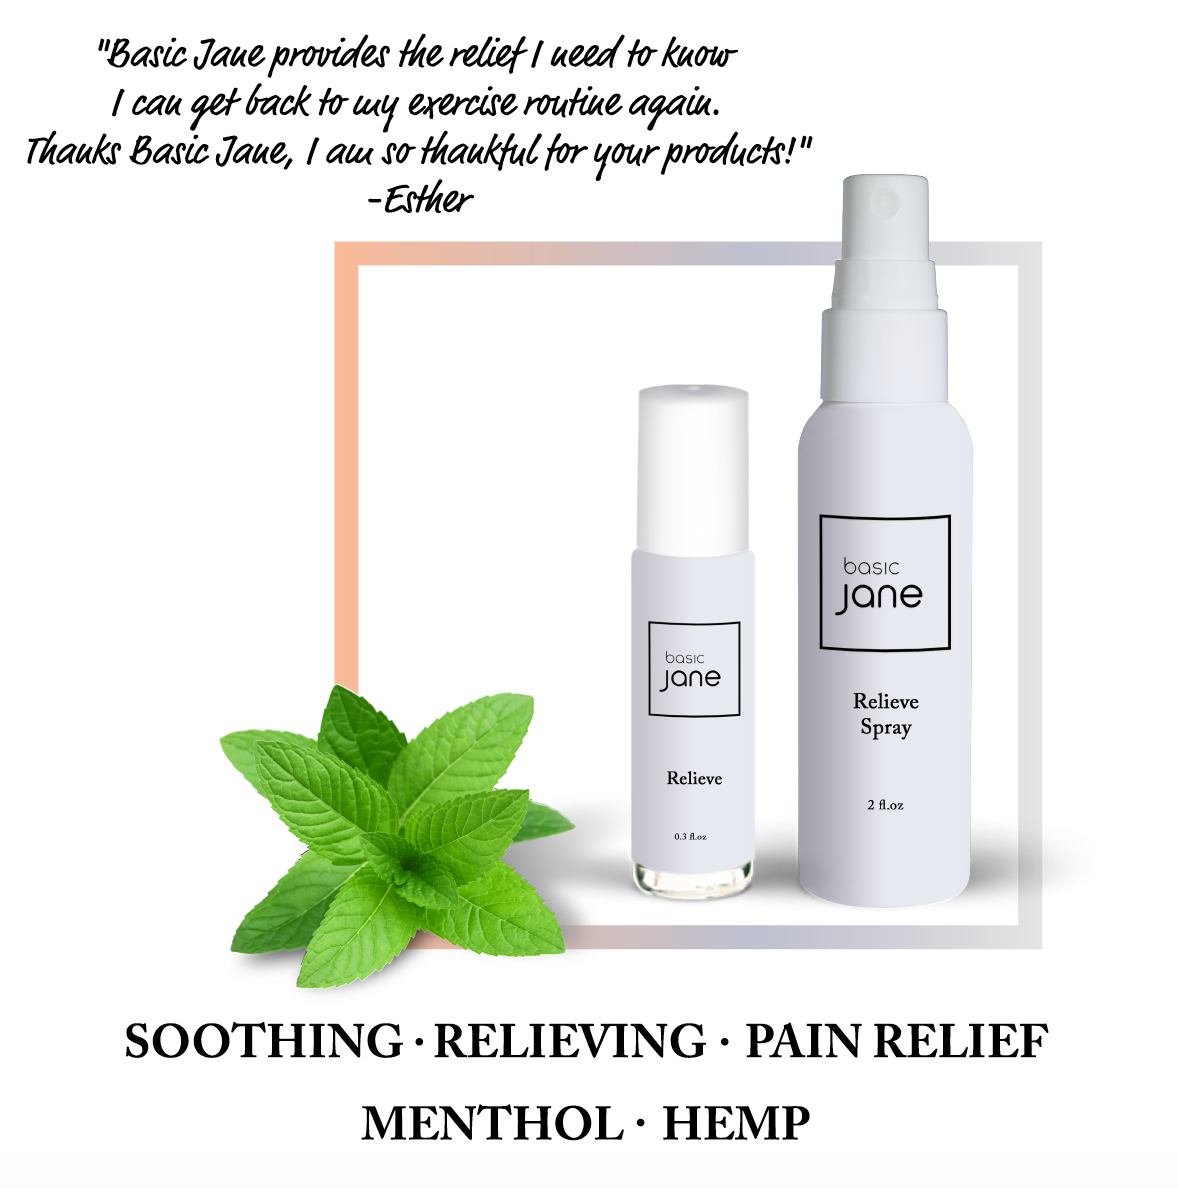 Relieve Natural Topical Pain Relief Spray with Cannabis (<0.3% THC) and Menthol | Basic Jane